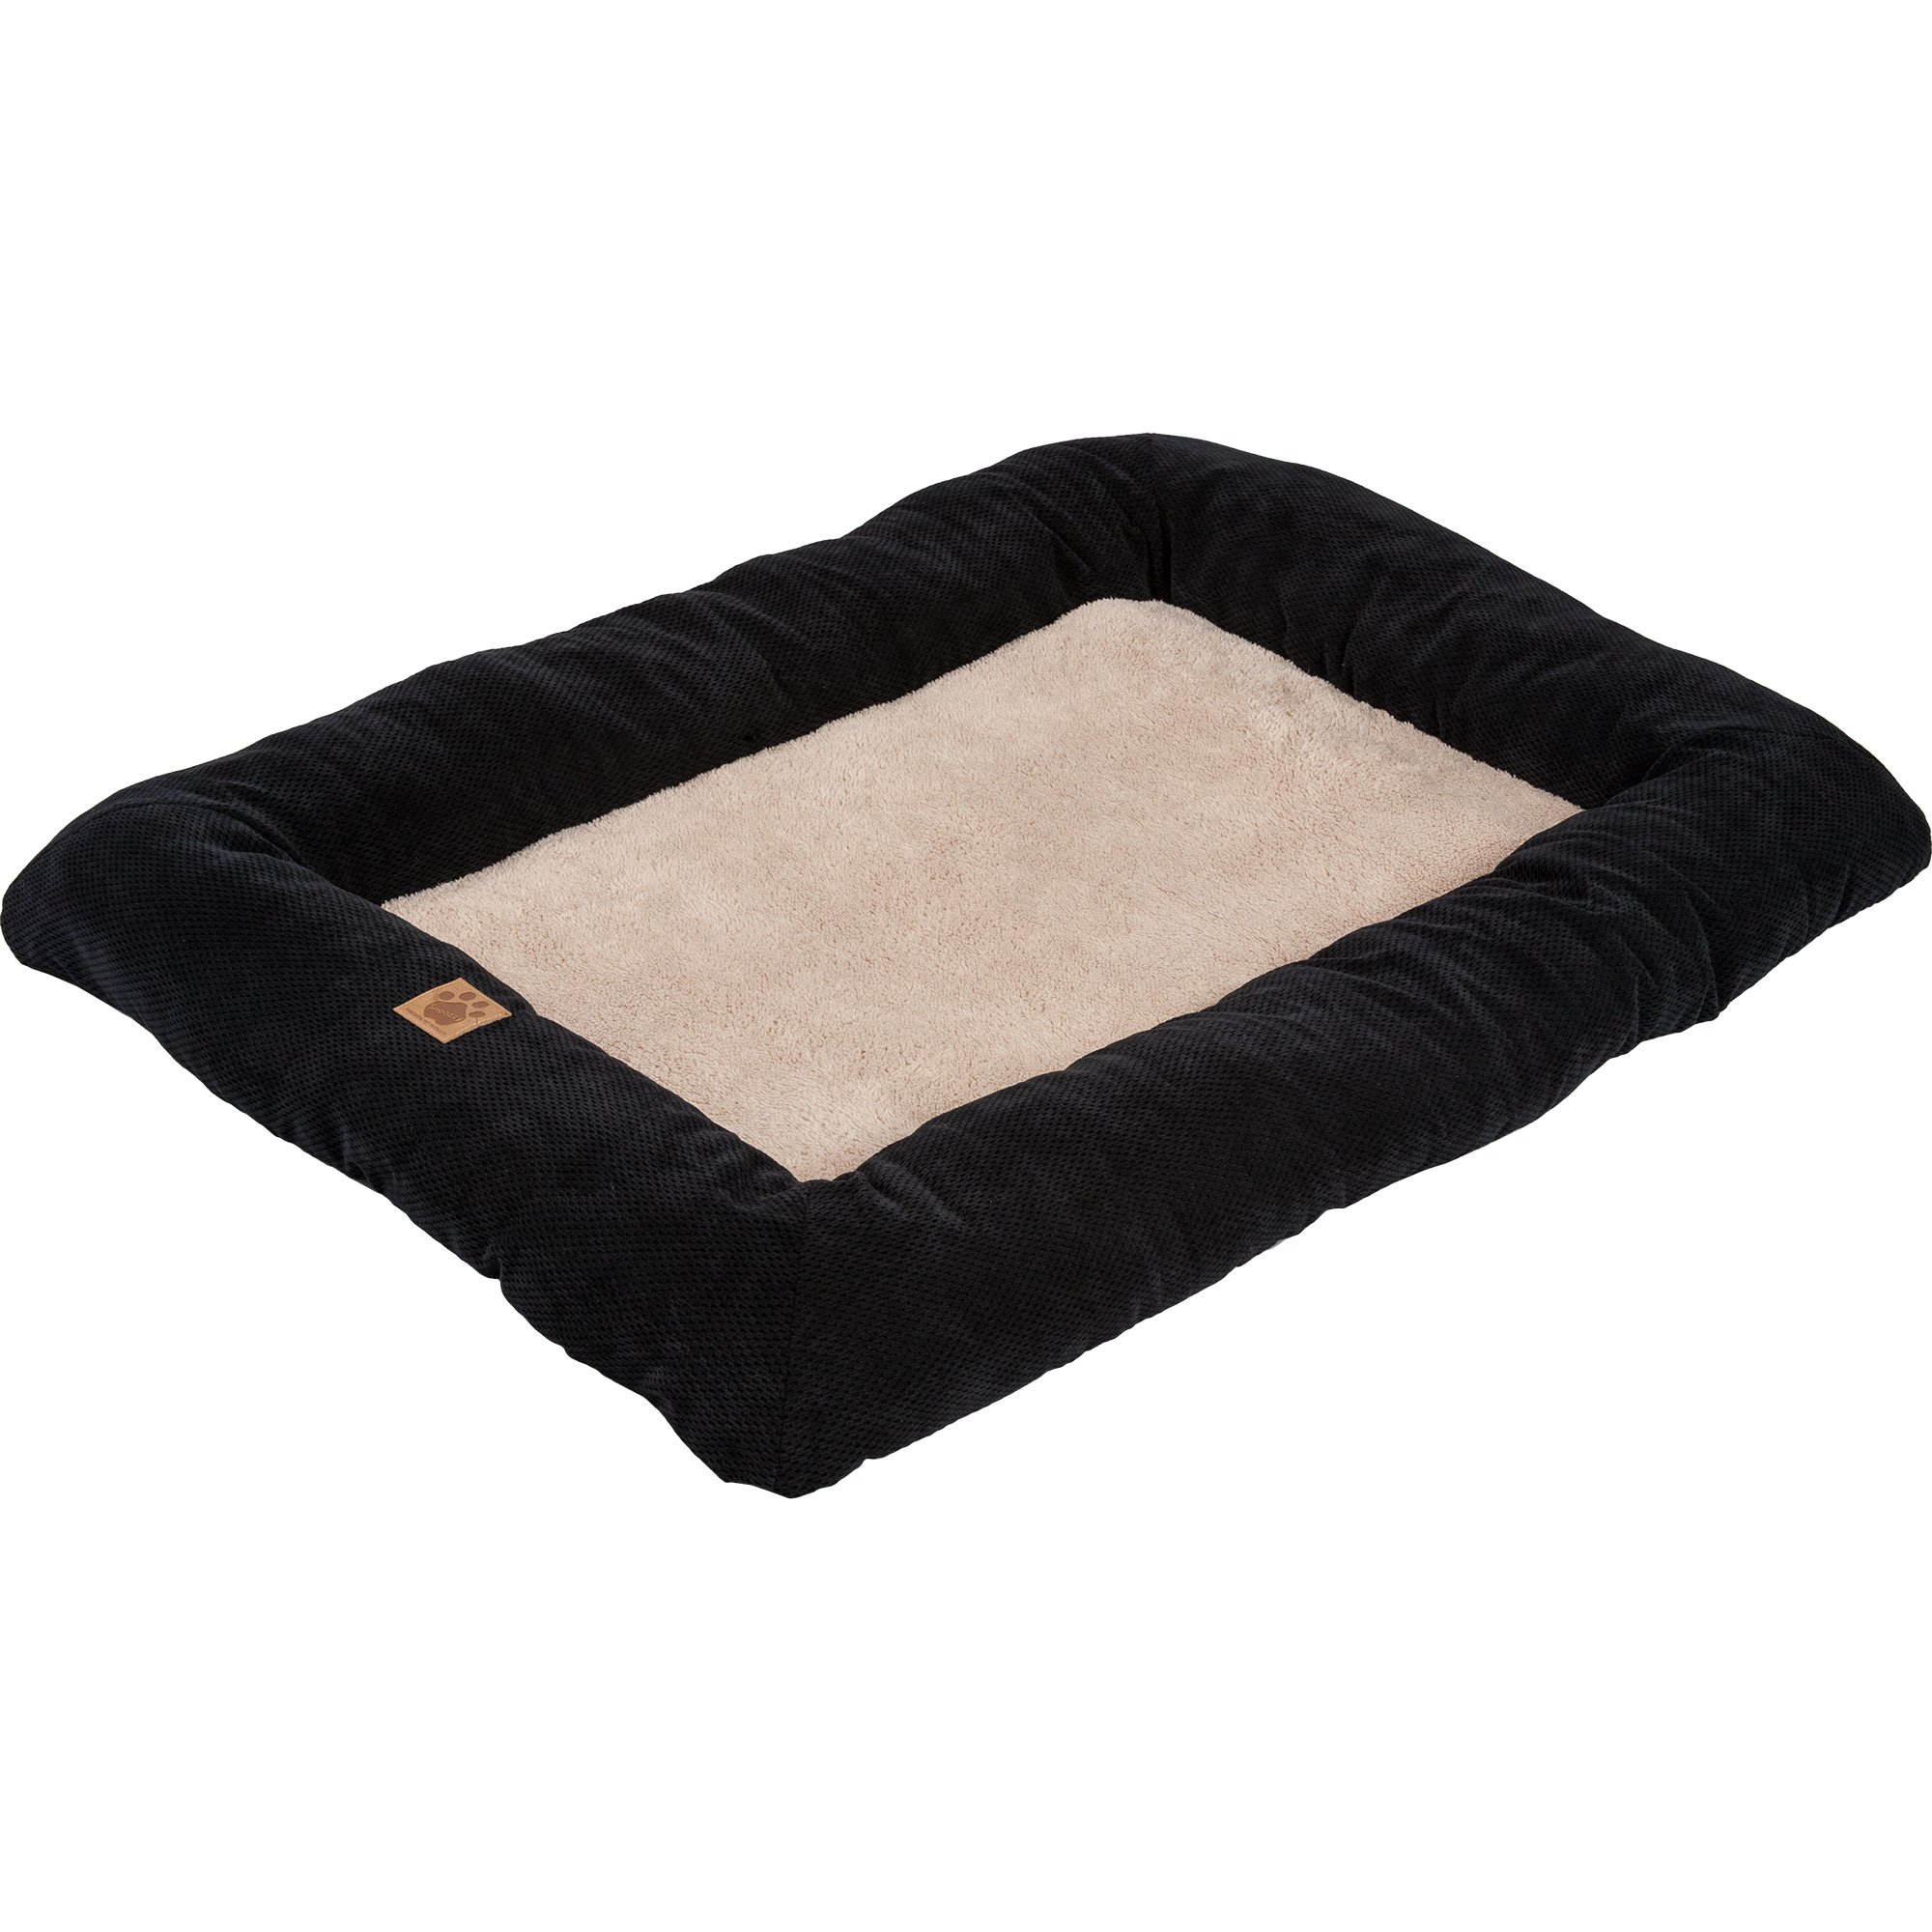 Precision Pet SnooZZy Mod Chic Low Bumper Mat, 5000 Black by Petmate (Image #1)